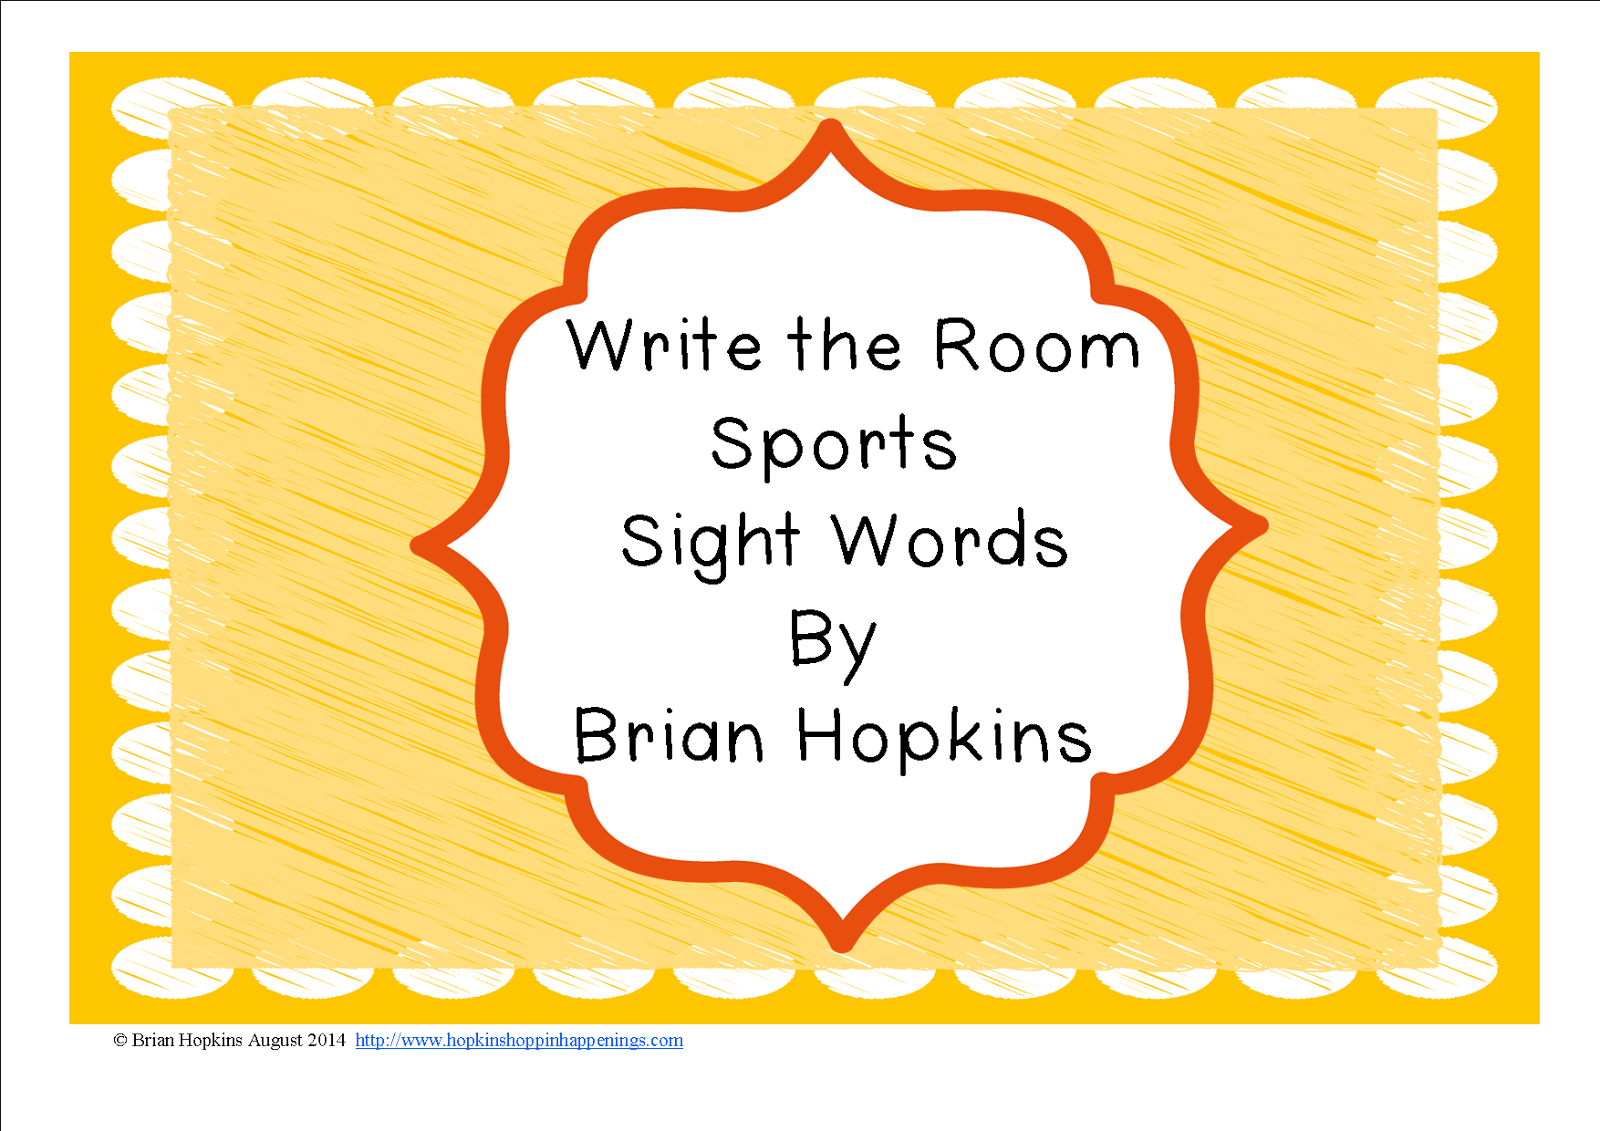 http://www.teacherspayteachers.com/Product/Write-The-Room-Sports-Sight-Words-FREEBIE-1394096